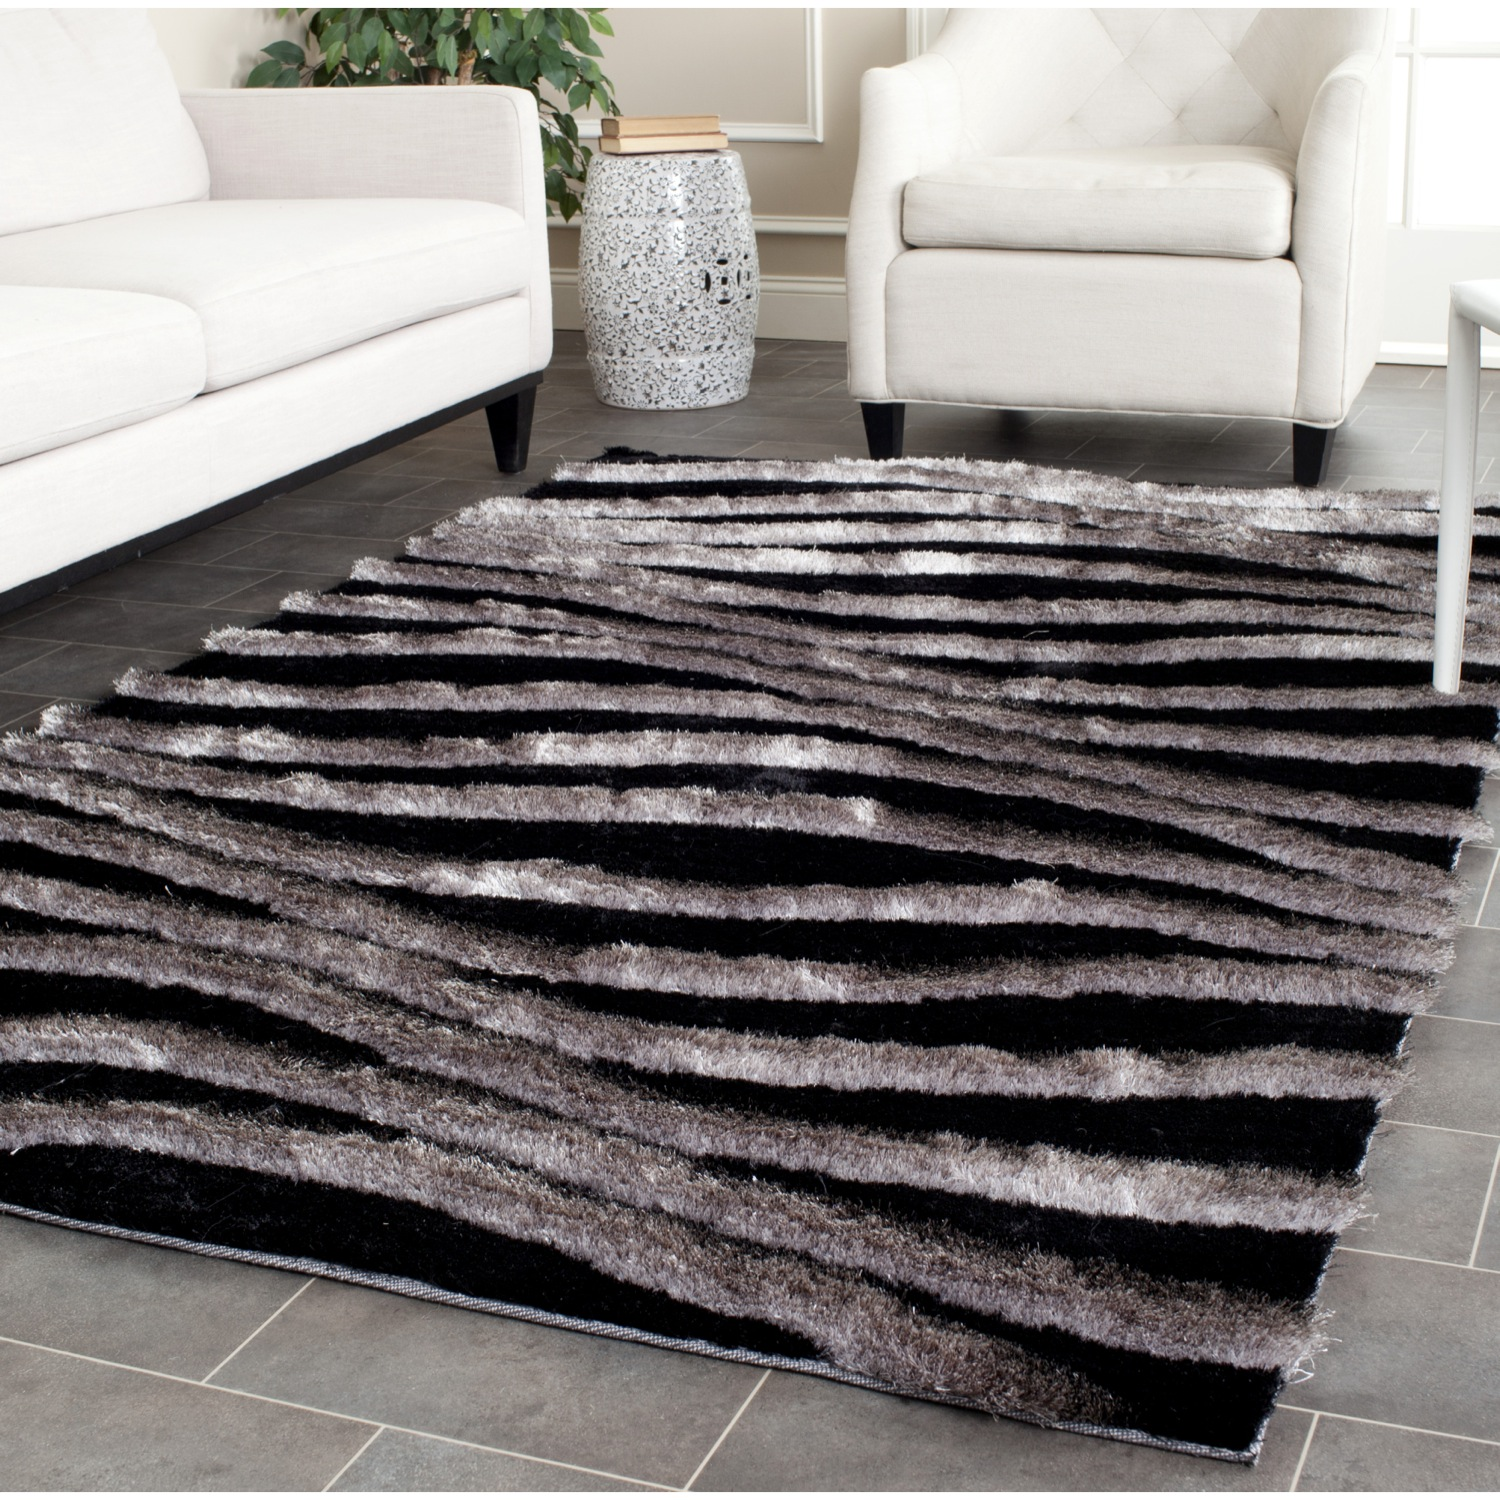 3d Area Rugs Home Decor